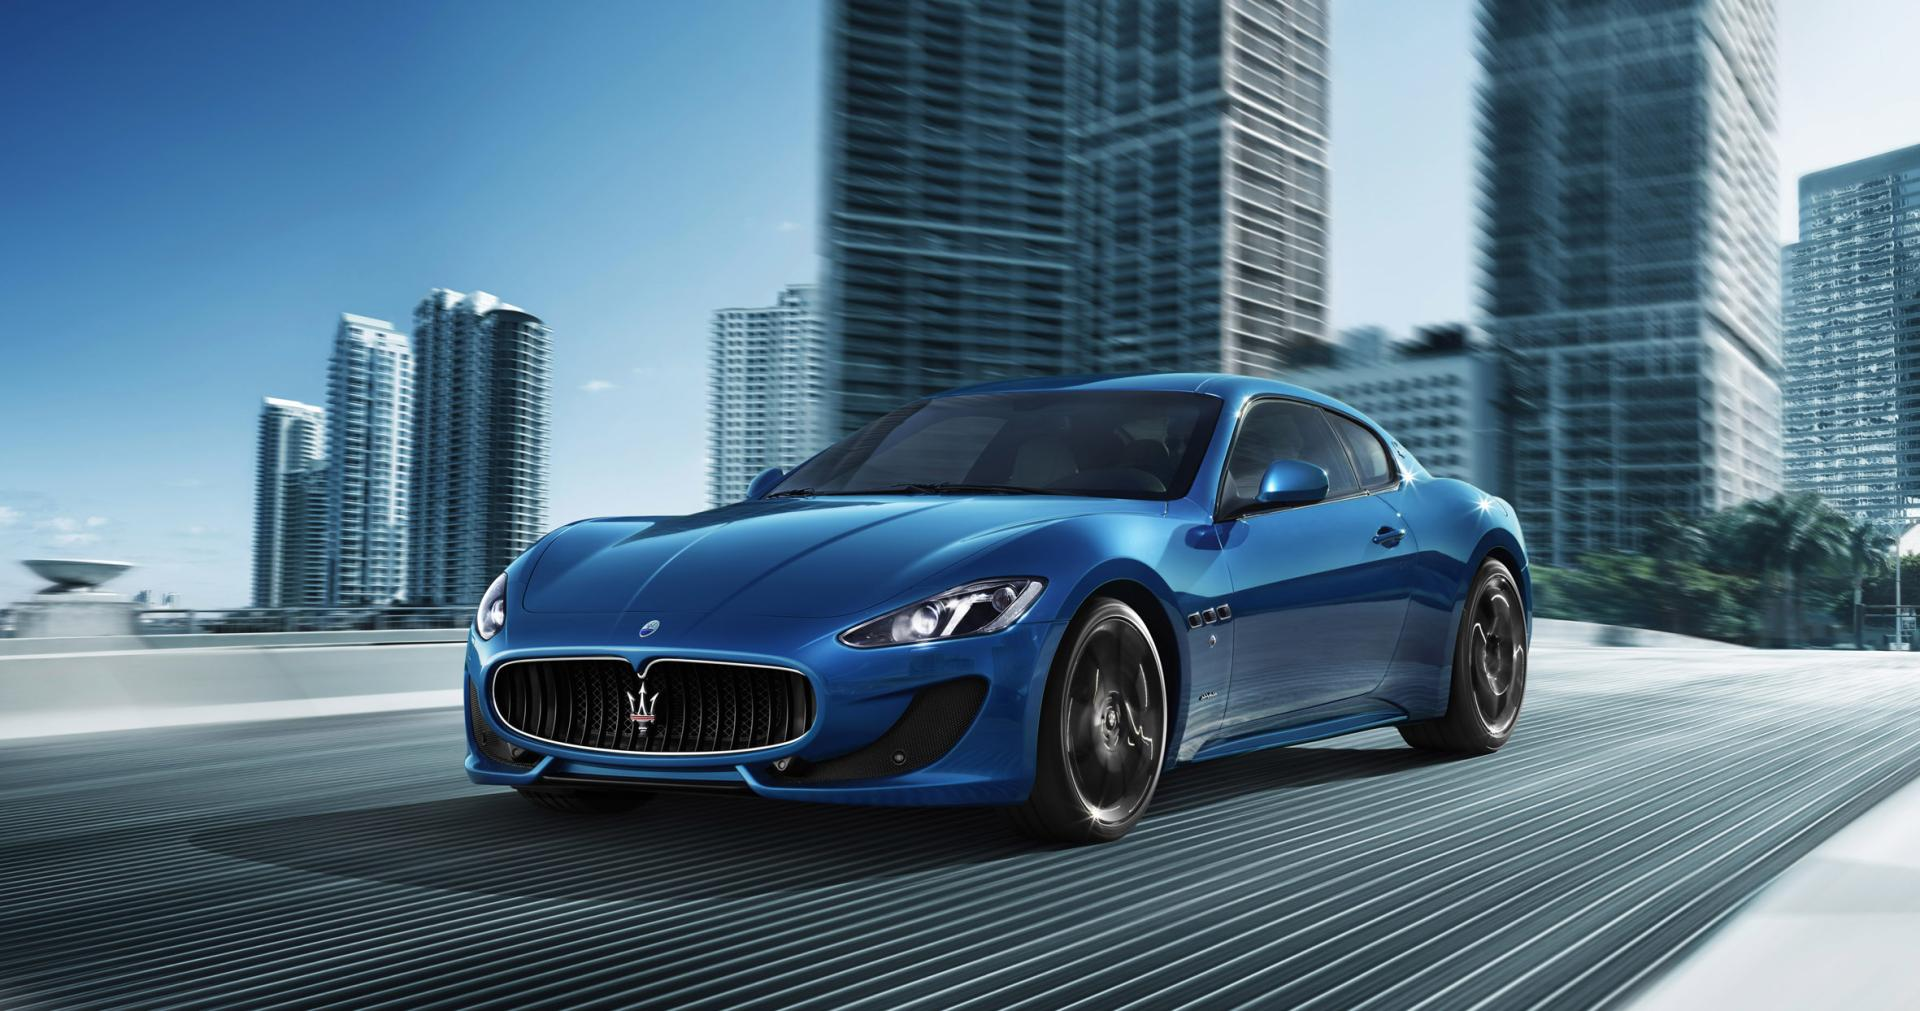 2012 Maserati GranTurismo Sport News and Information